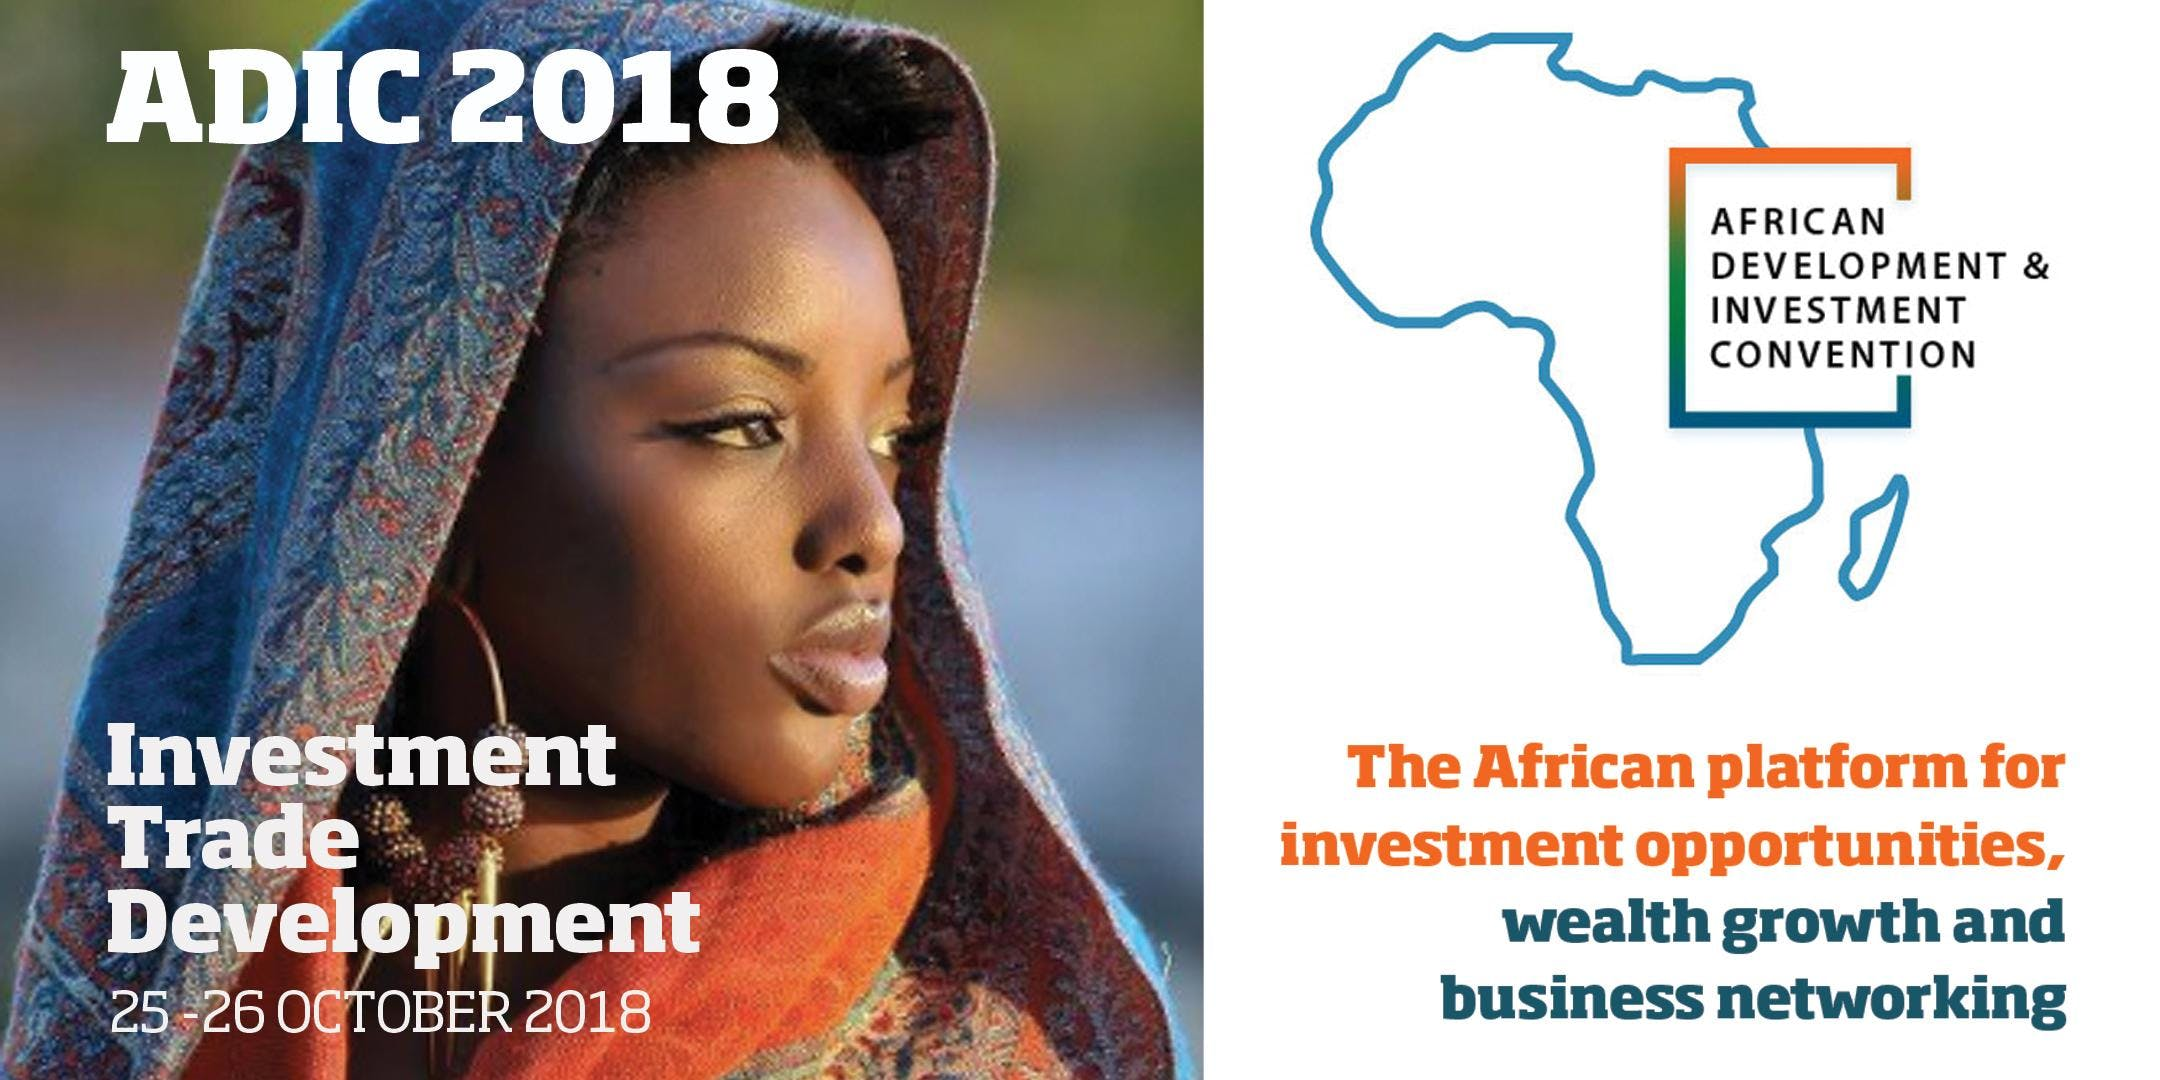 African Development and Investment Convetion (ADIC 2018)